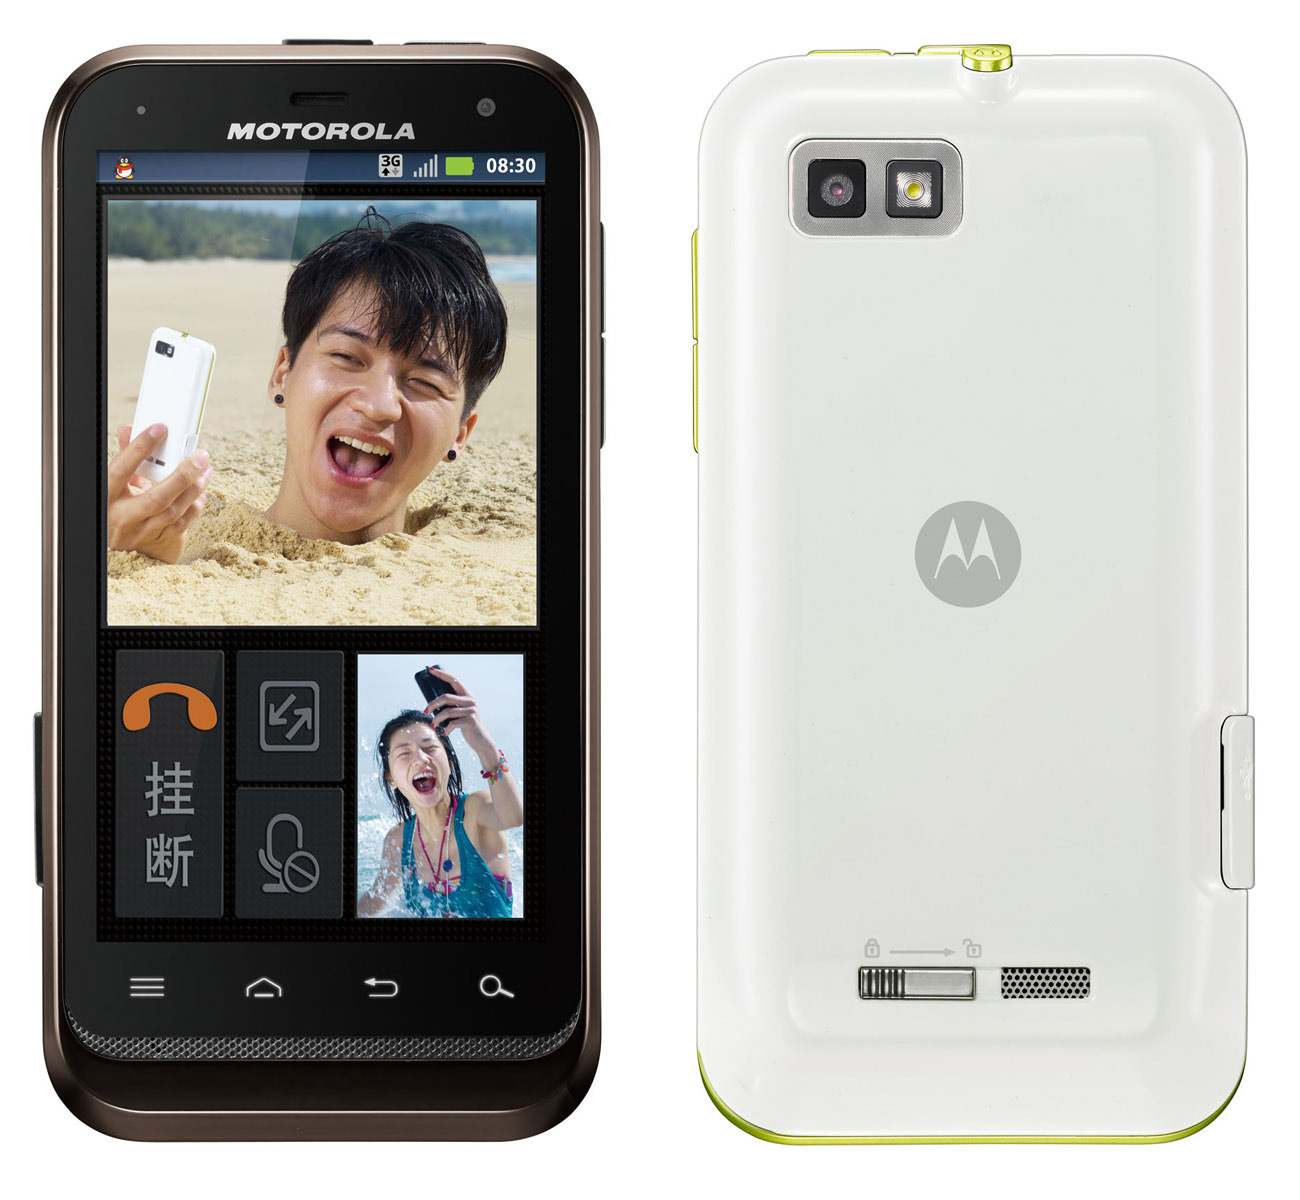 Image result for Motorola Defy XT535